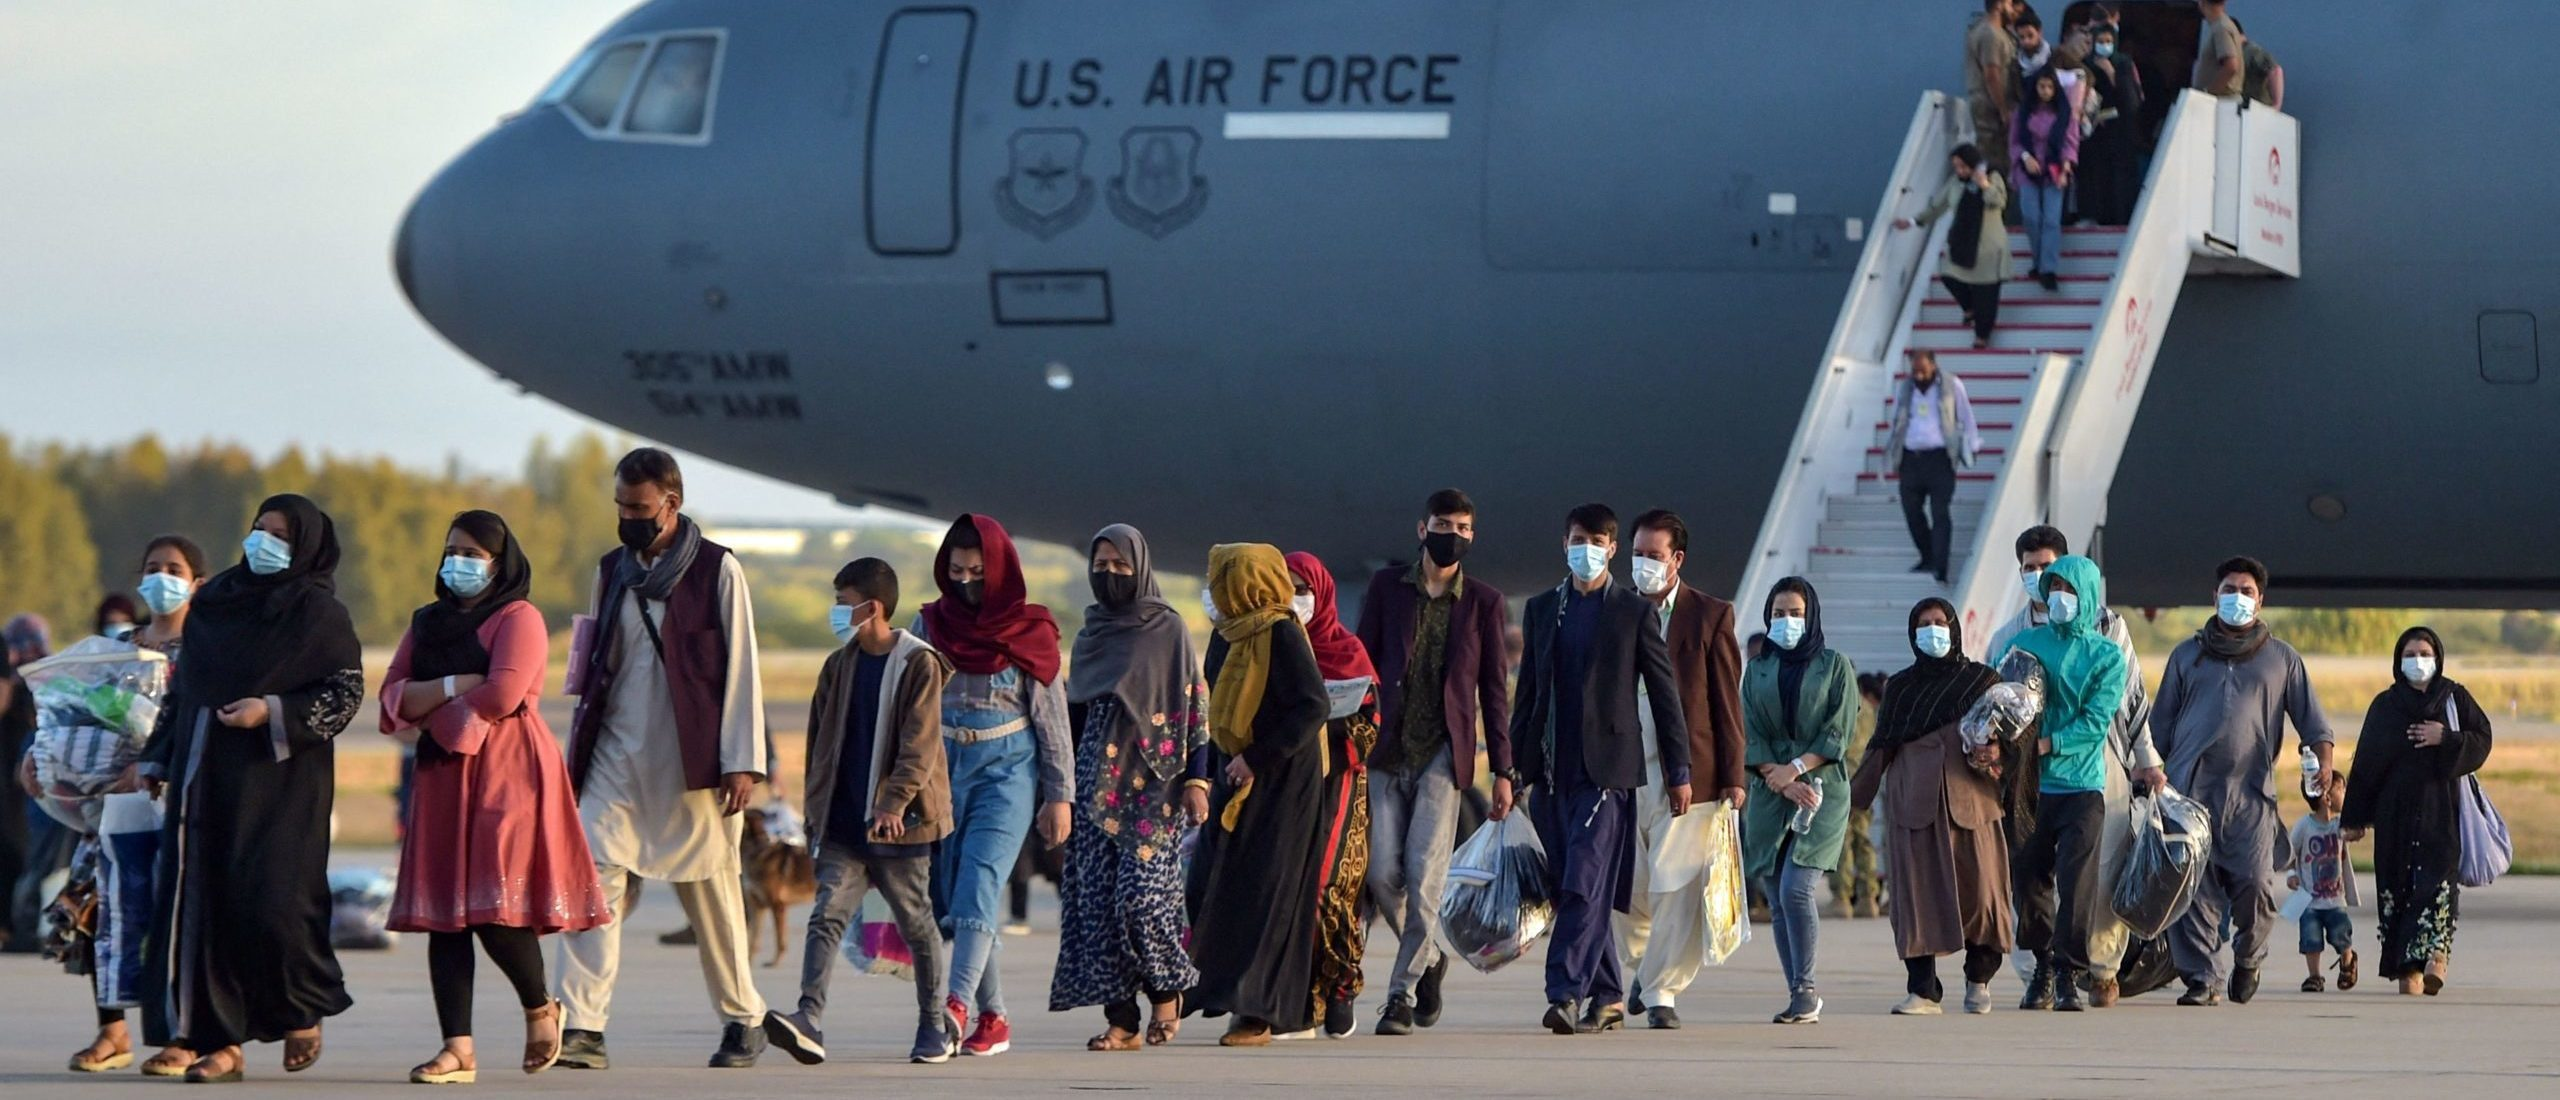 here's-why-the-bulk-of-afghan-refugees-are-heading-to-purple-states